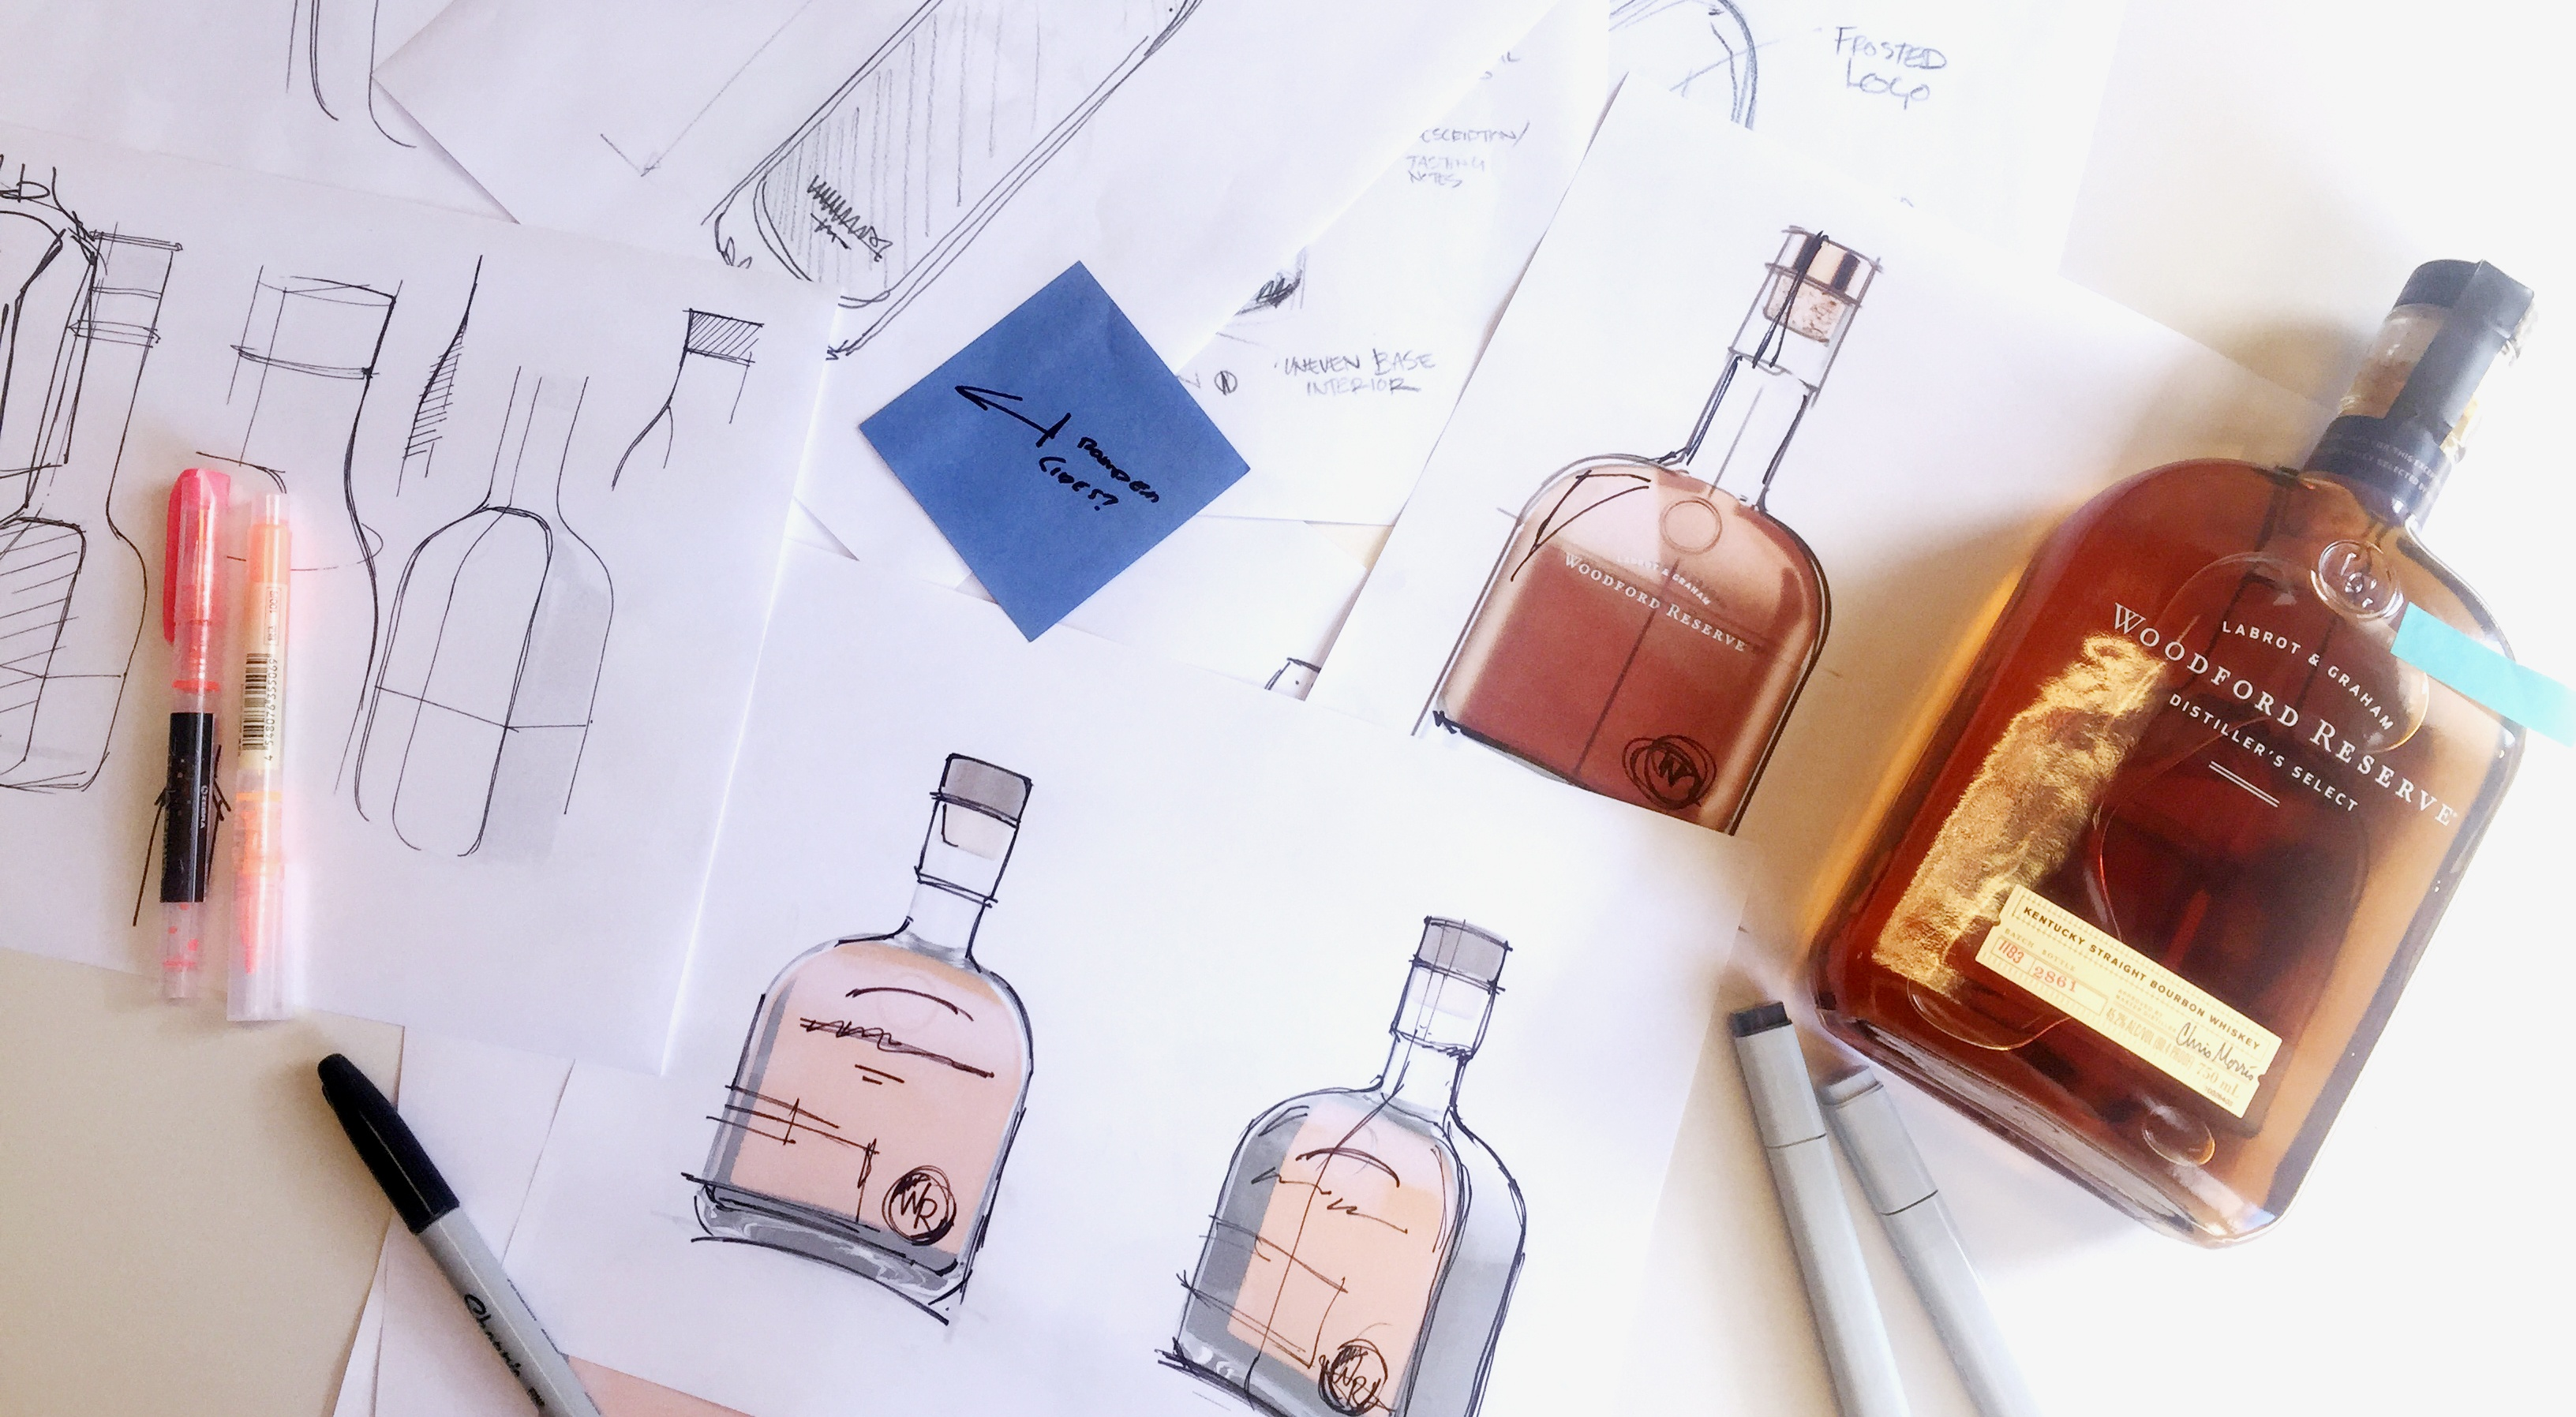 Woodford Reserve Building a Brand Family